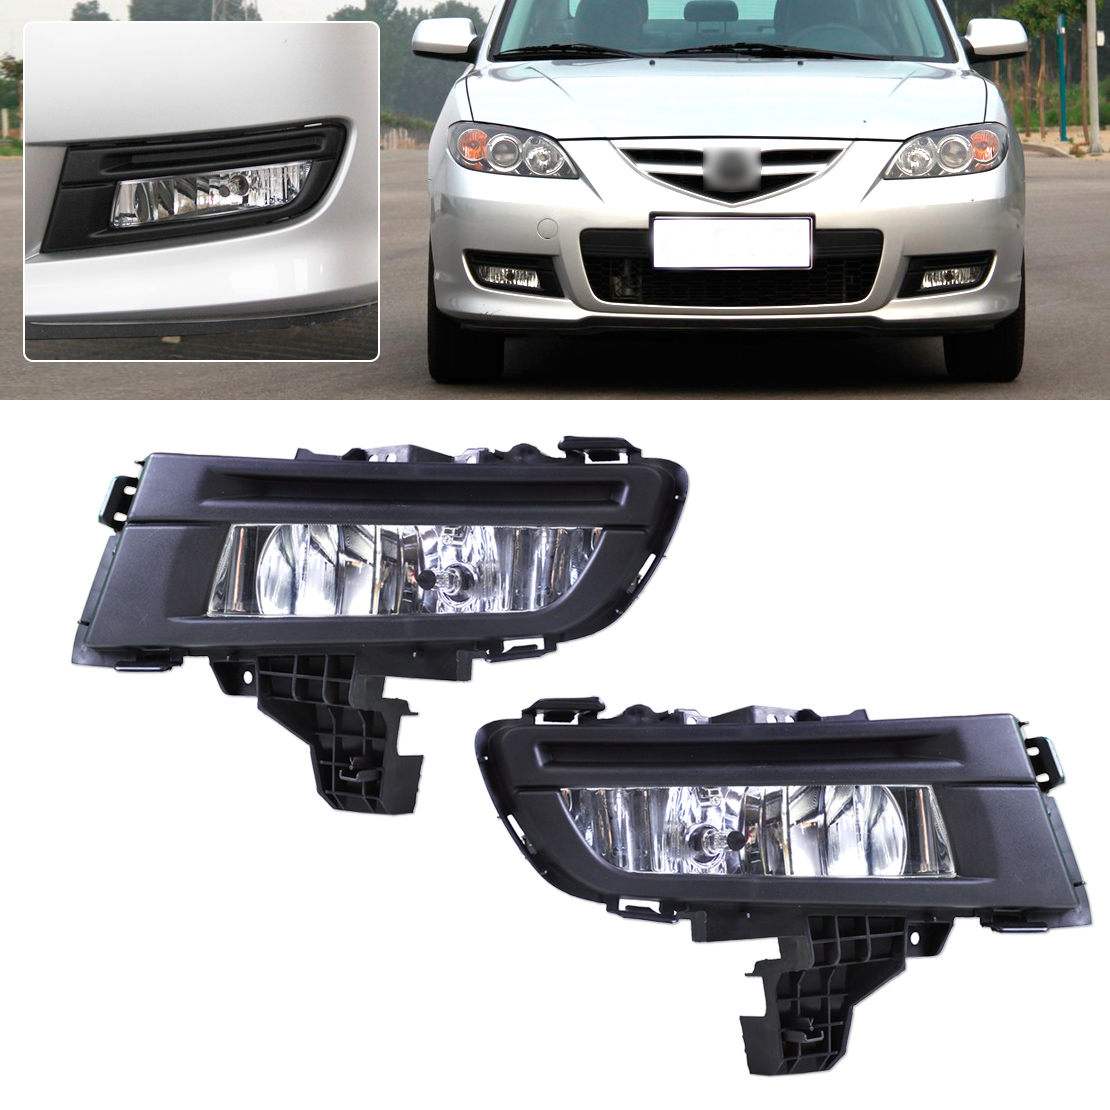 DWCX 1 Pair Front Right + Left Side Fog Light Lamp for Mazda 3 2007 2008 2009 Size approx. 29cm x 12cm one pair protective front left right bumper fog light lamp grille covers for a udi a8 s8 q uattro d3 2006 2007 2008